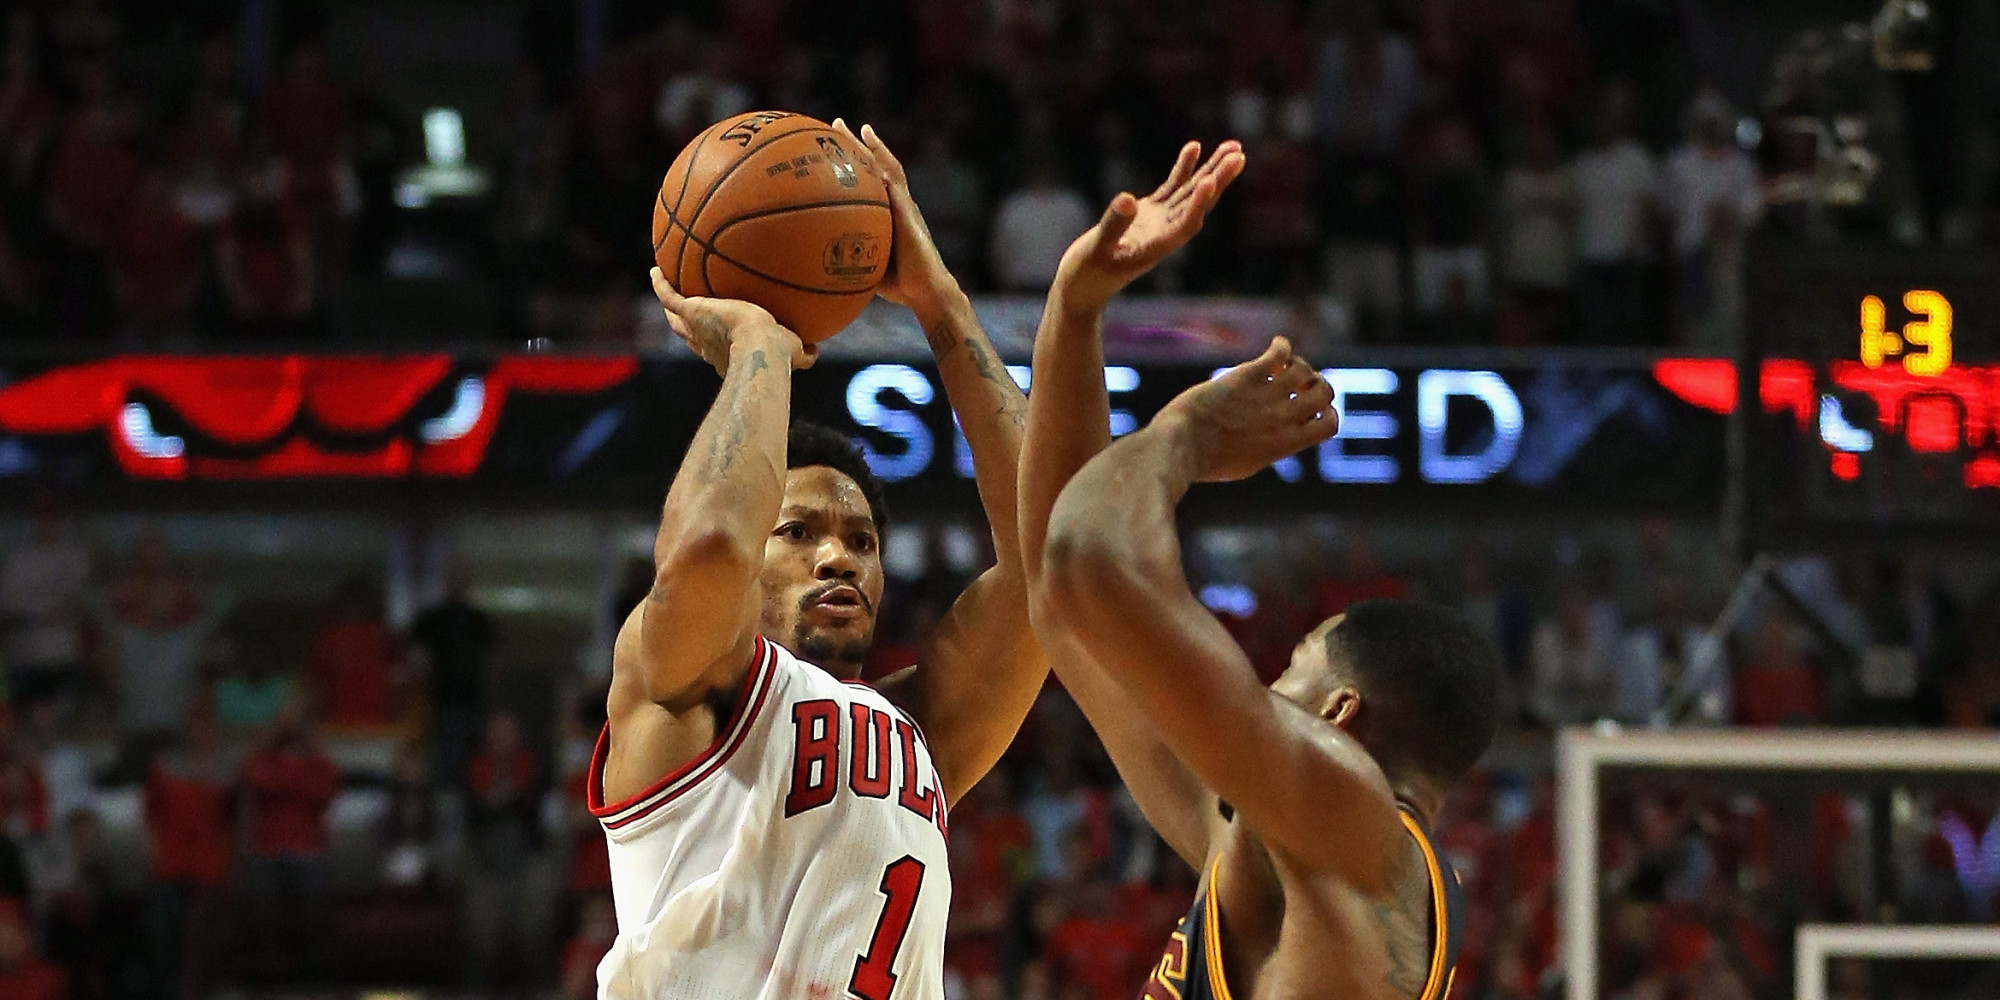 WATCH: Derrick Rose Hits Game-Winning 3-Pointer In Game 3 vs ...